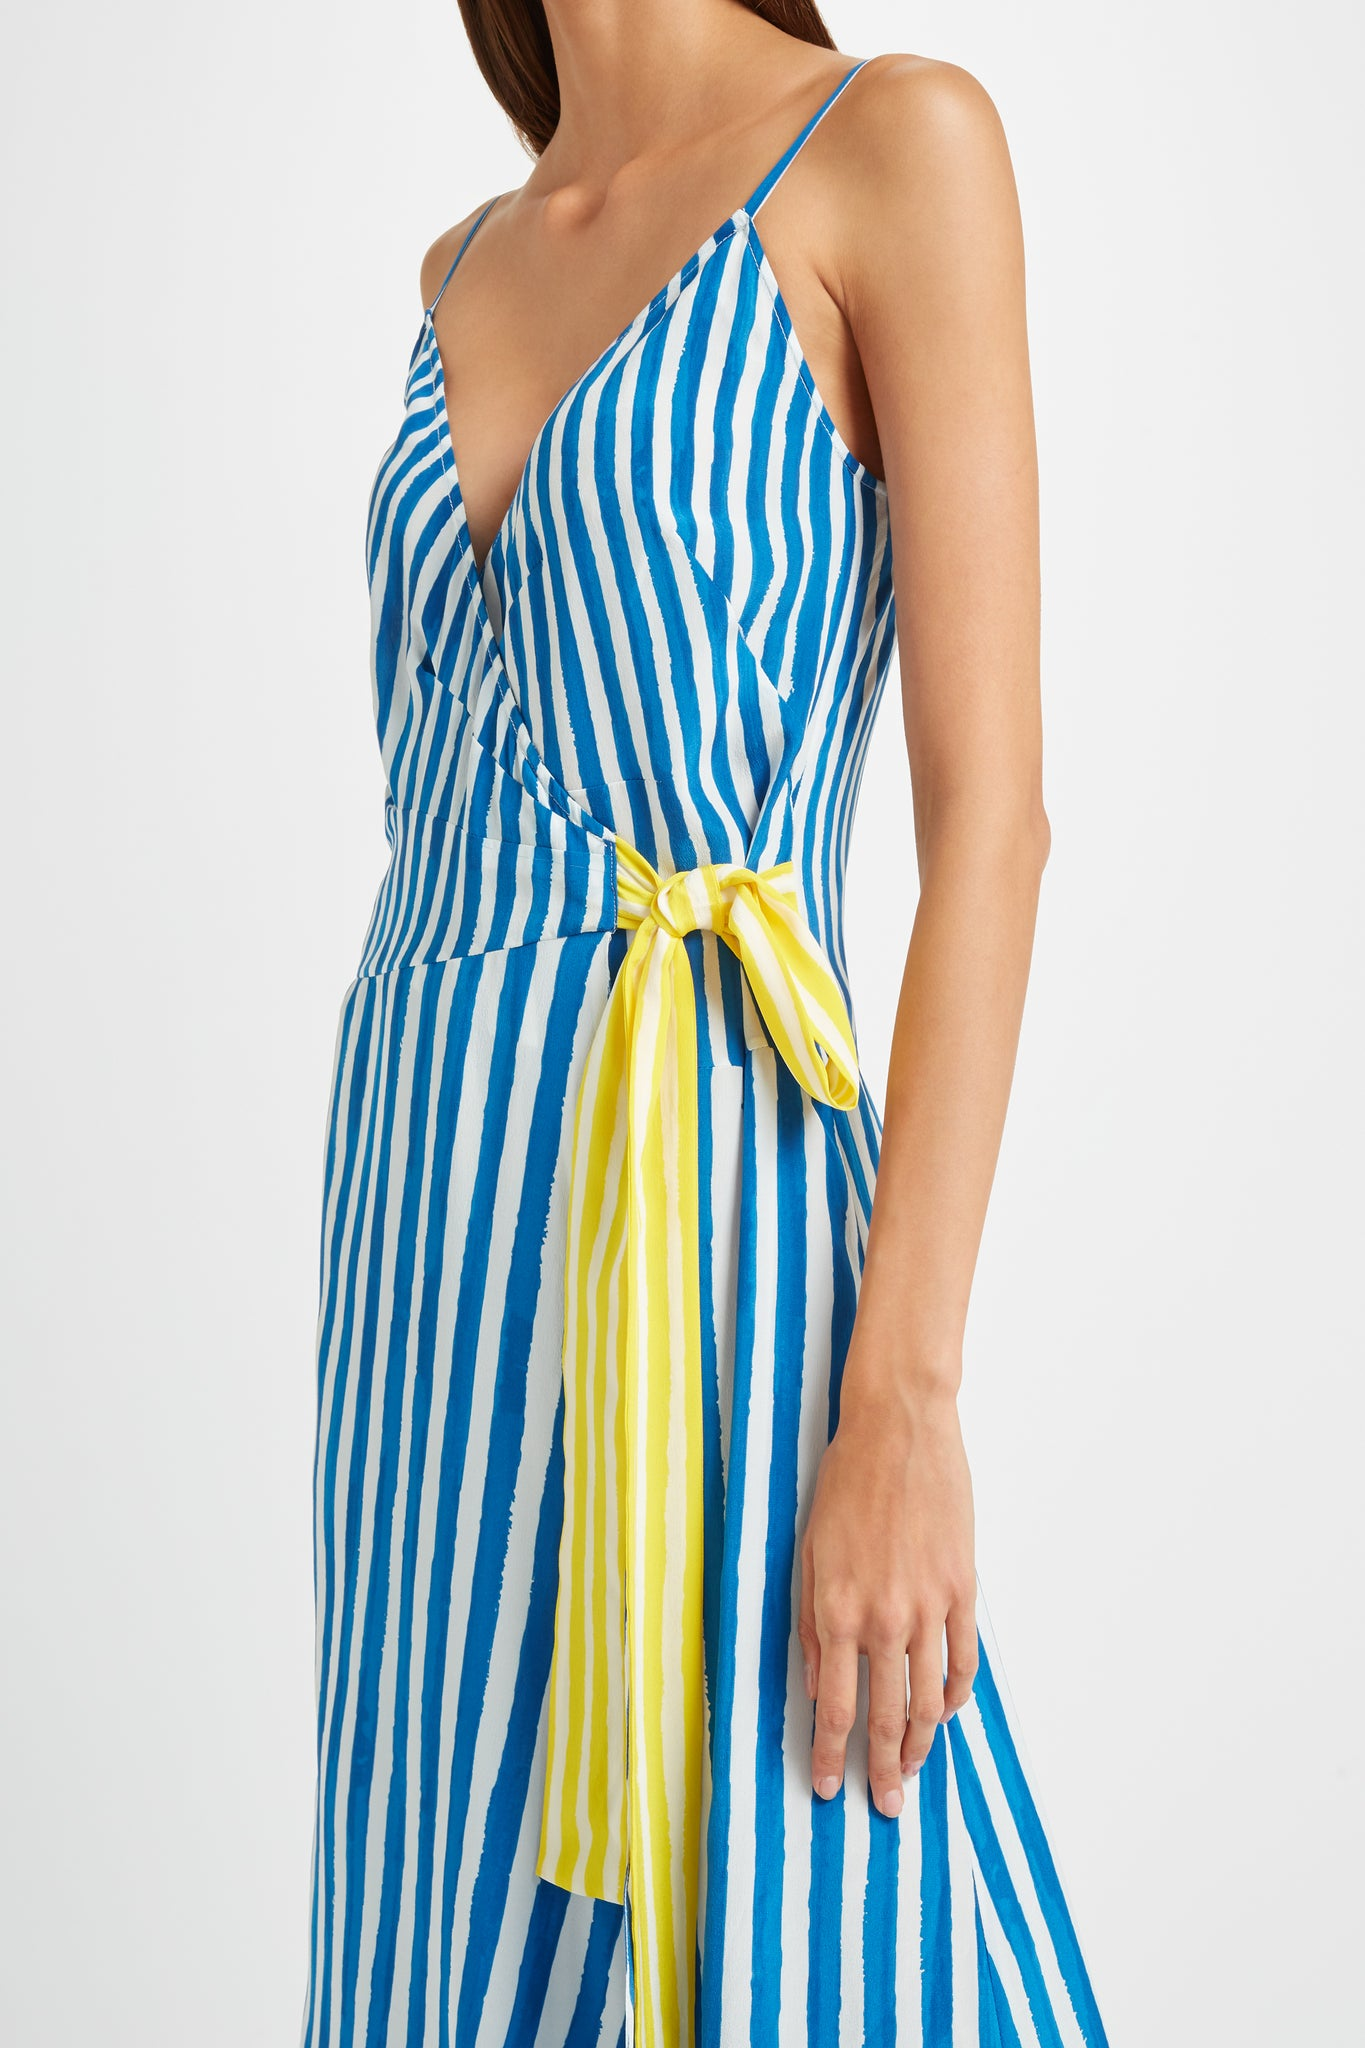 Kalmar Colette Dress in Blue Brush Stripe